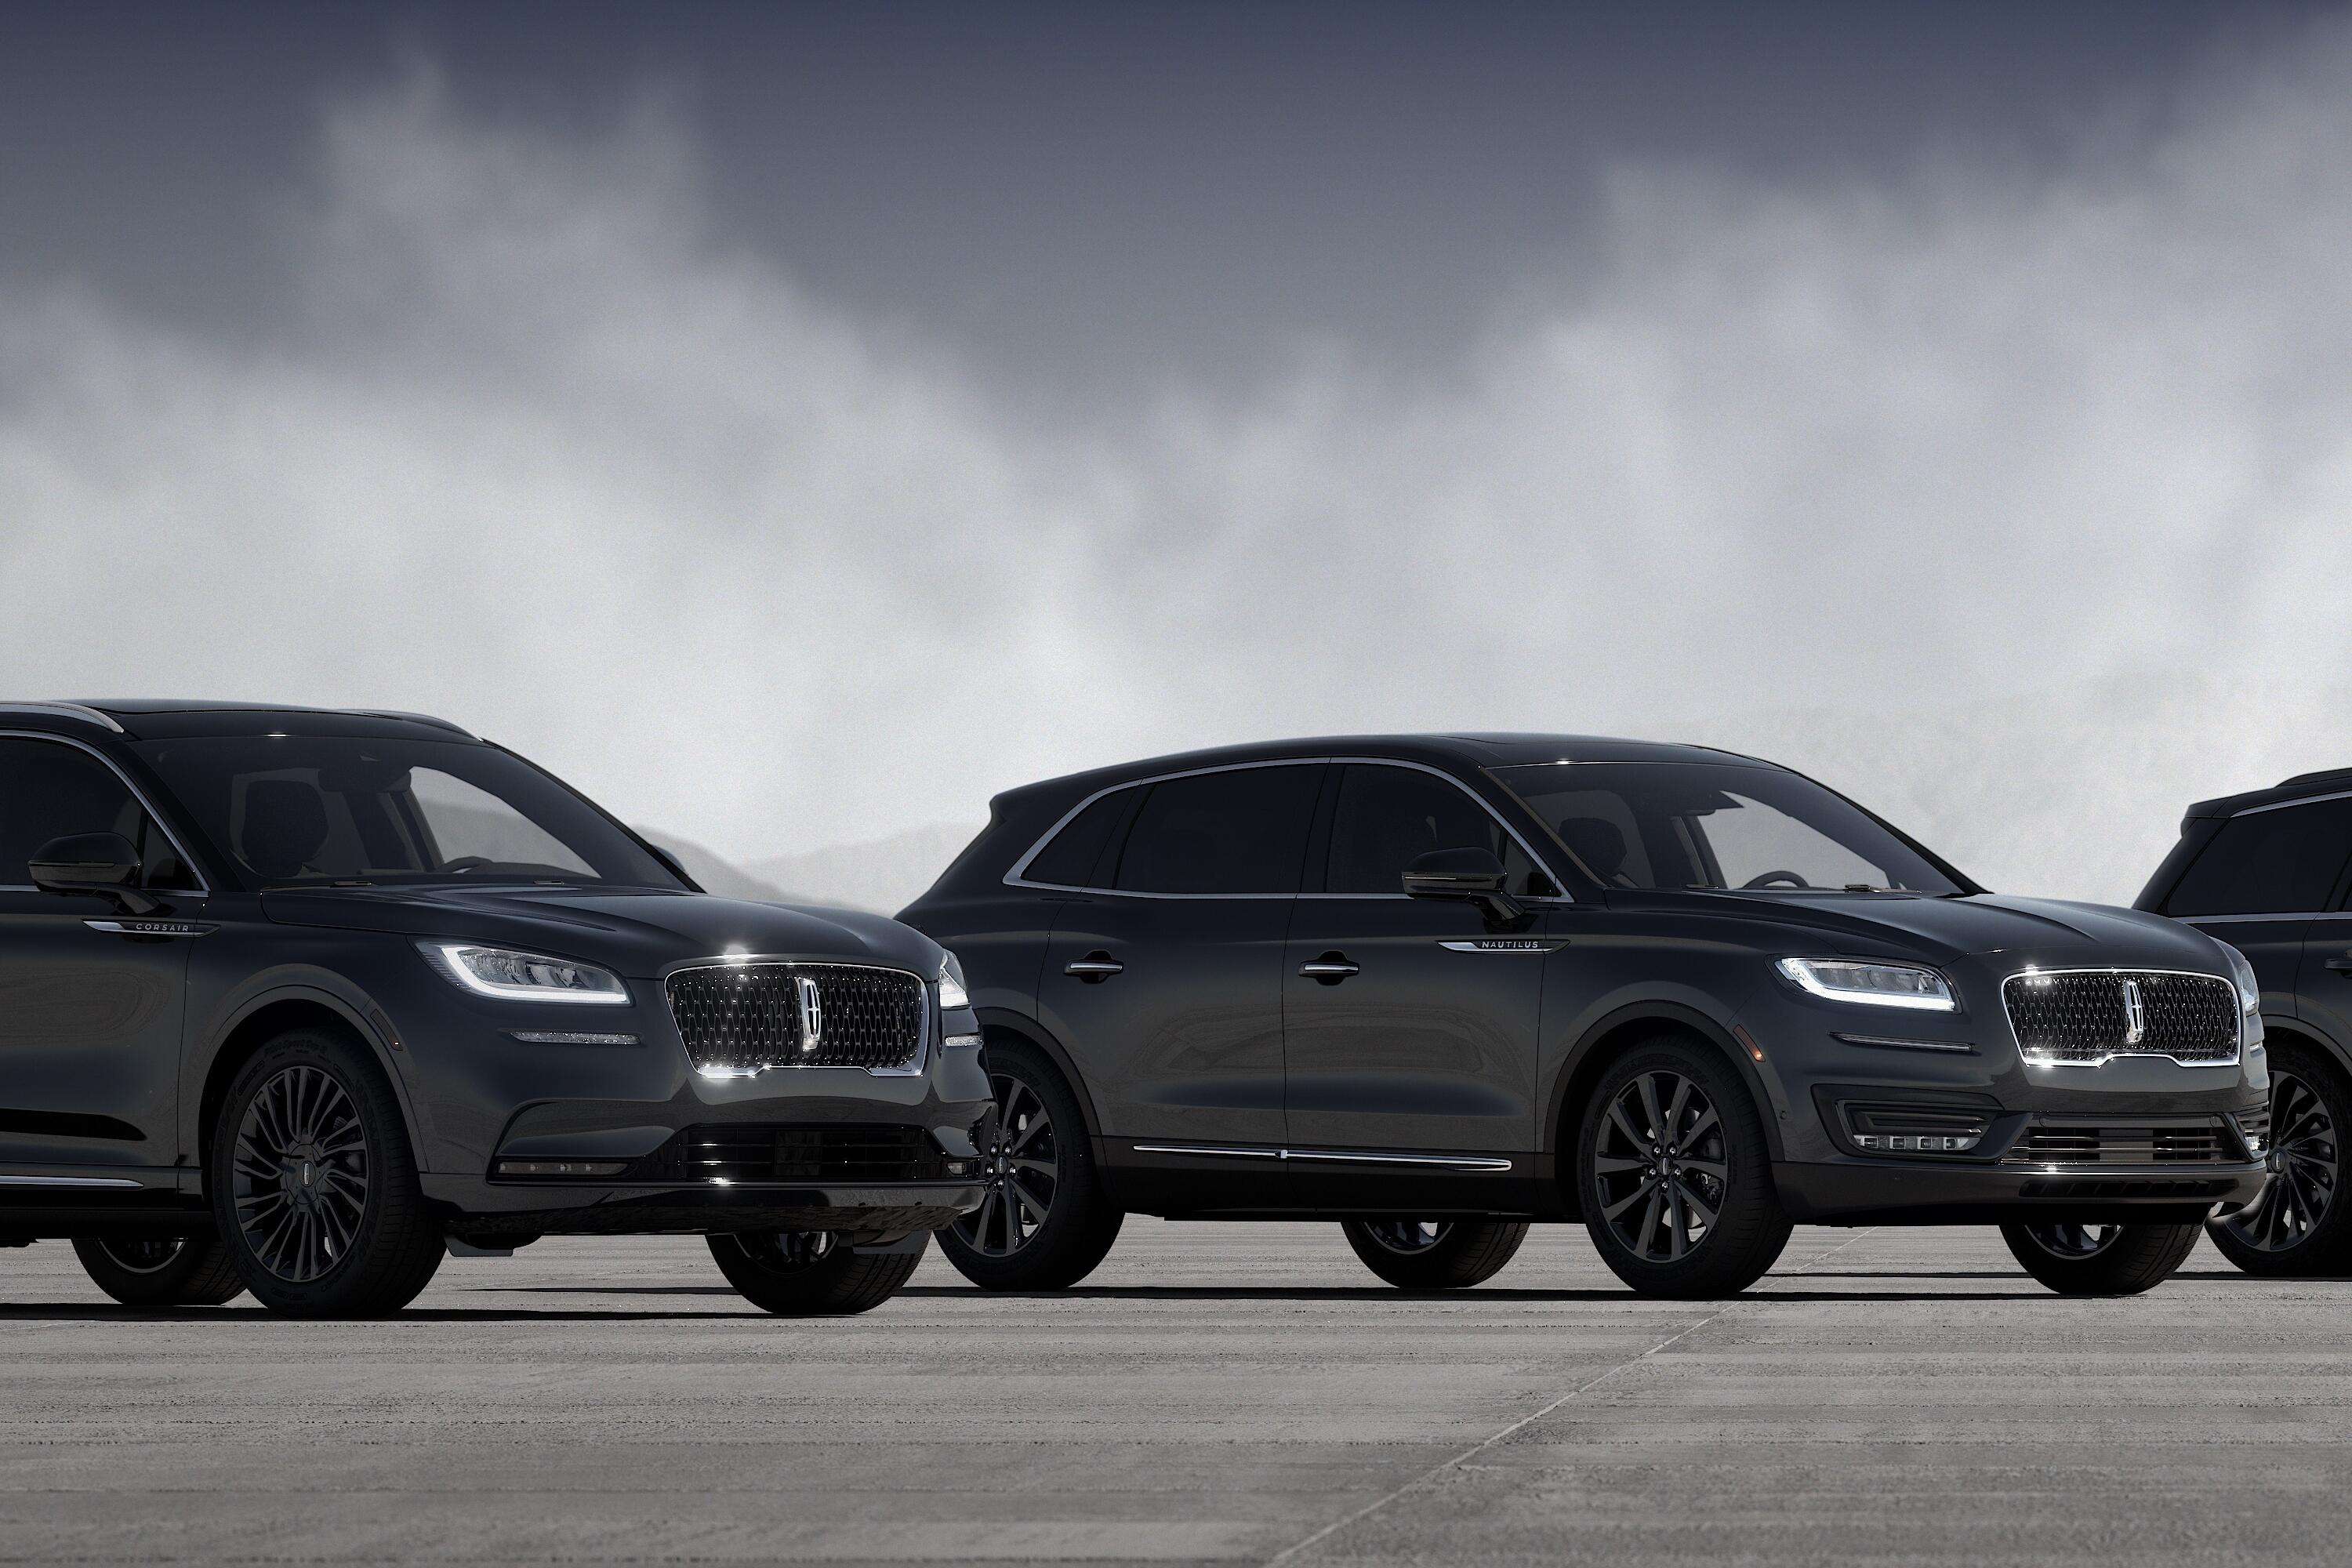 lincoln-monochromatic-suv-lineup-front